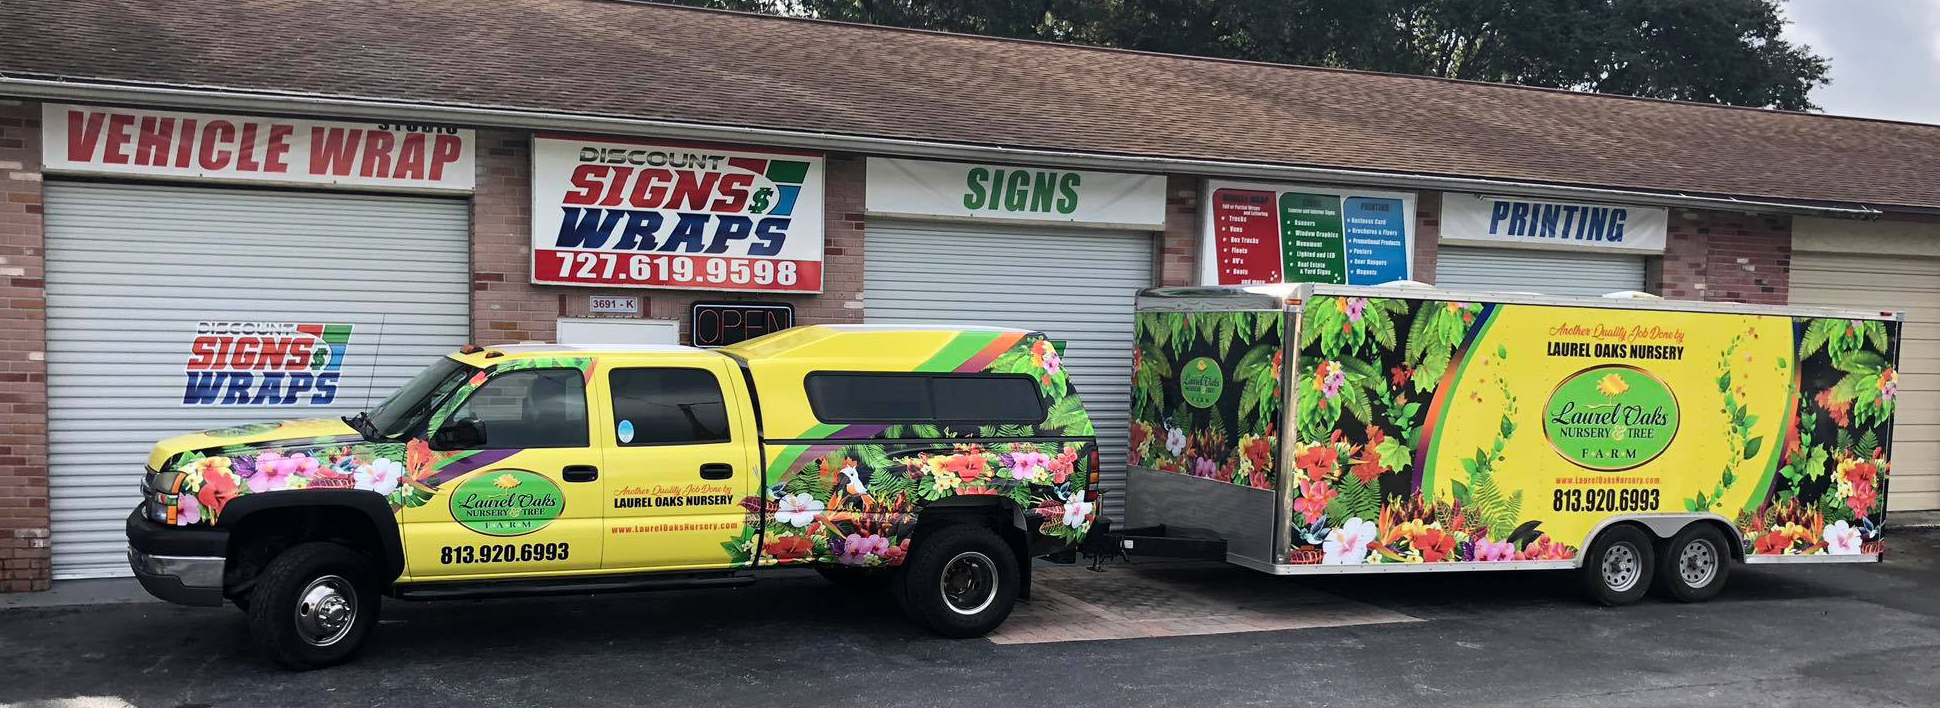 Truck Wrap and Discounted Price